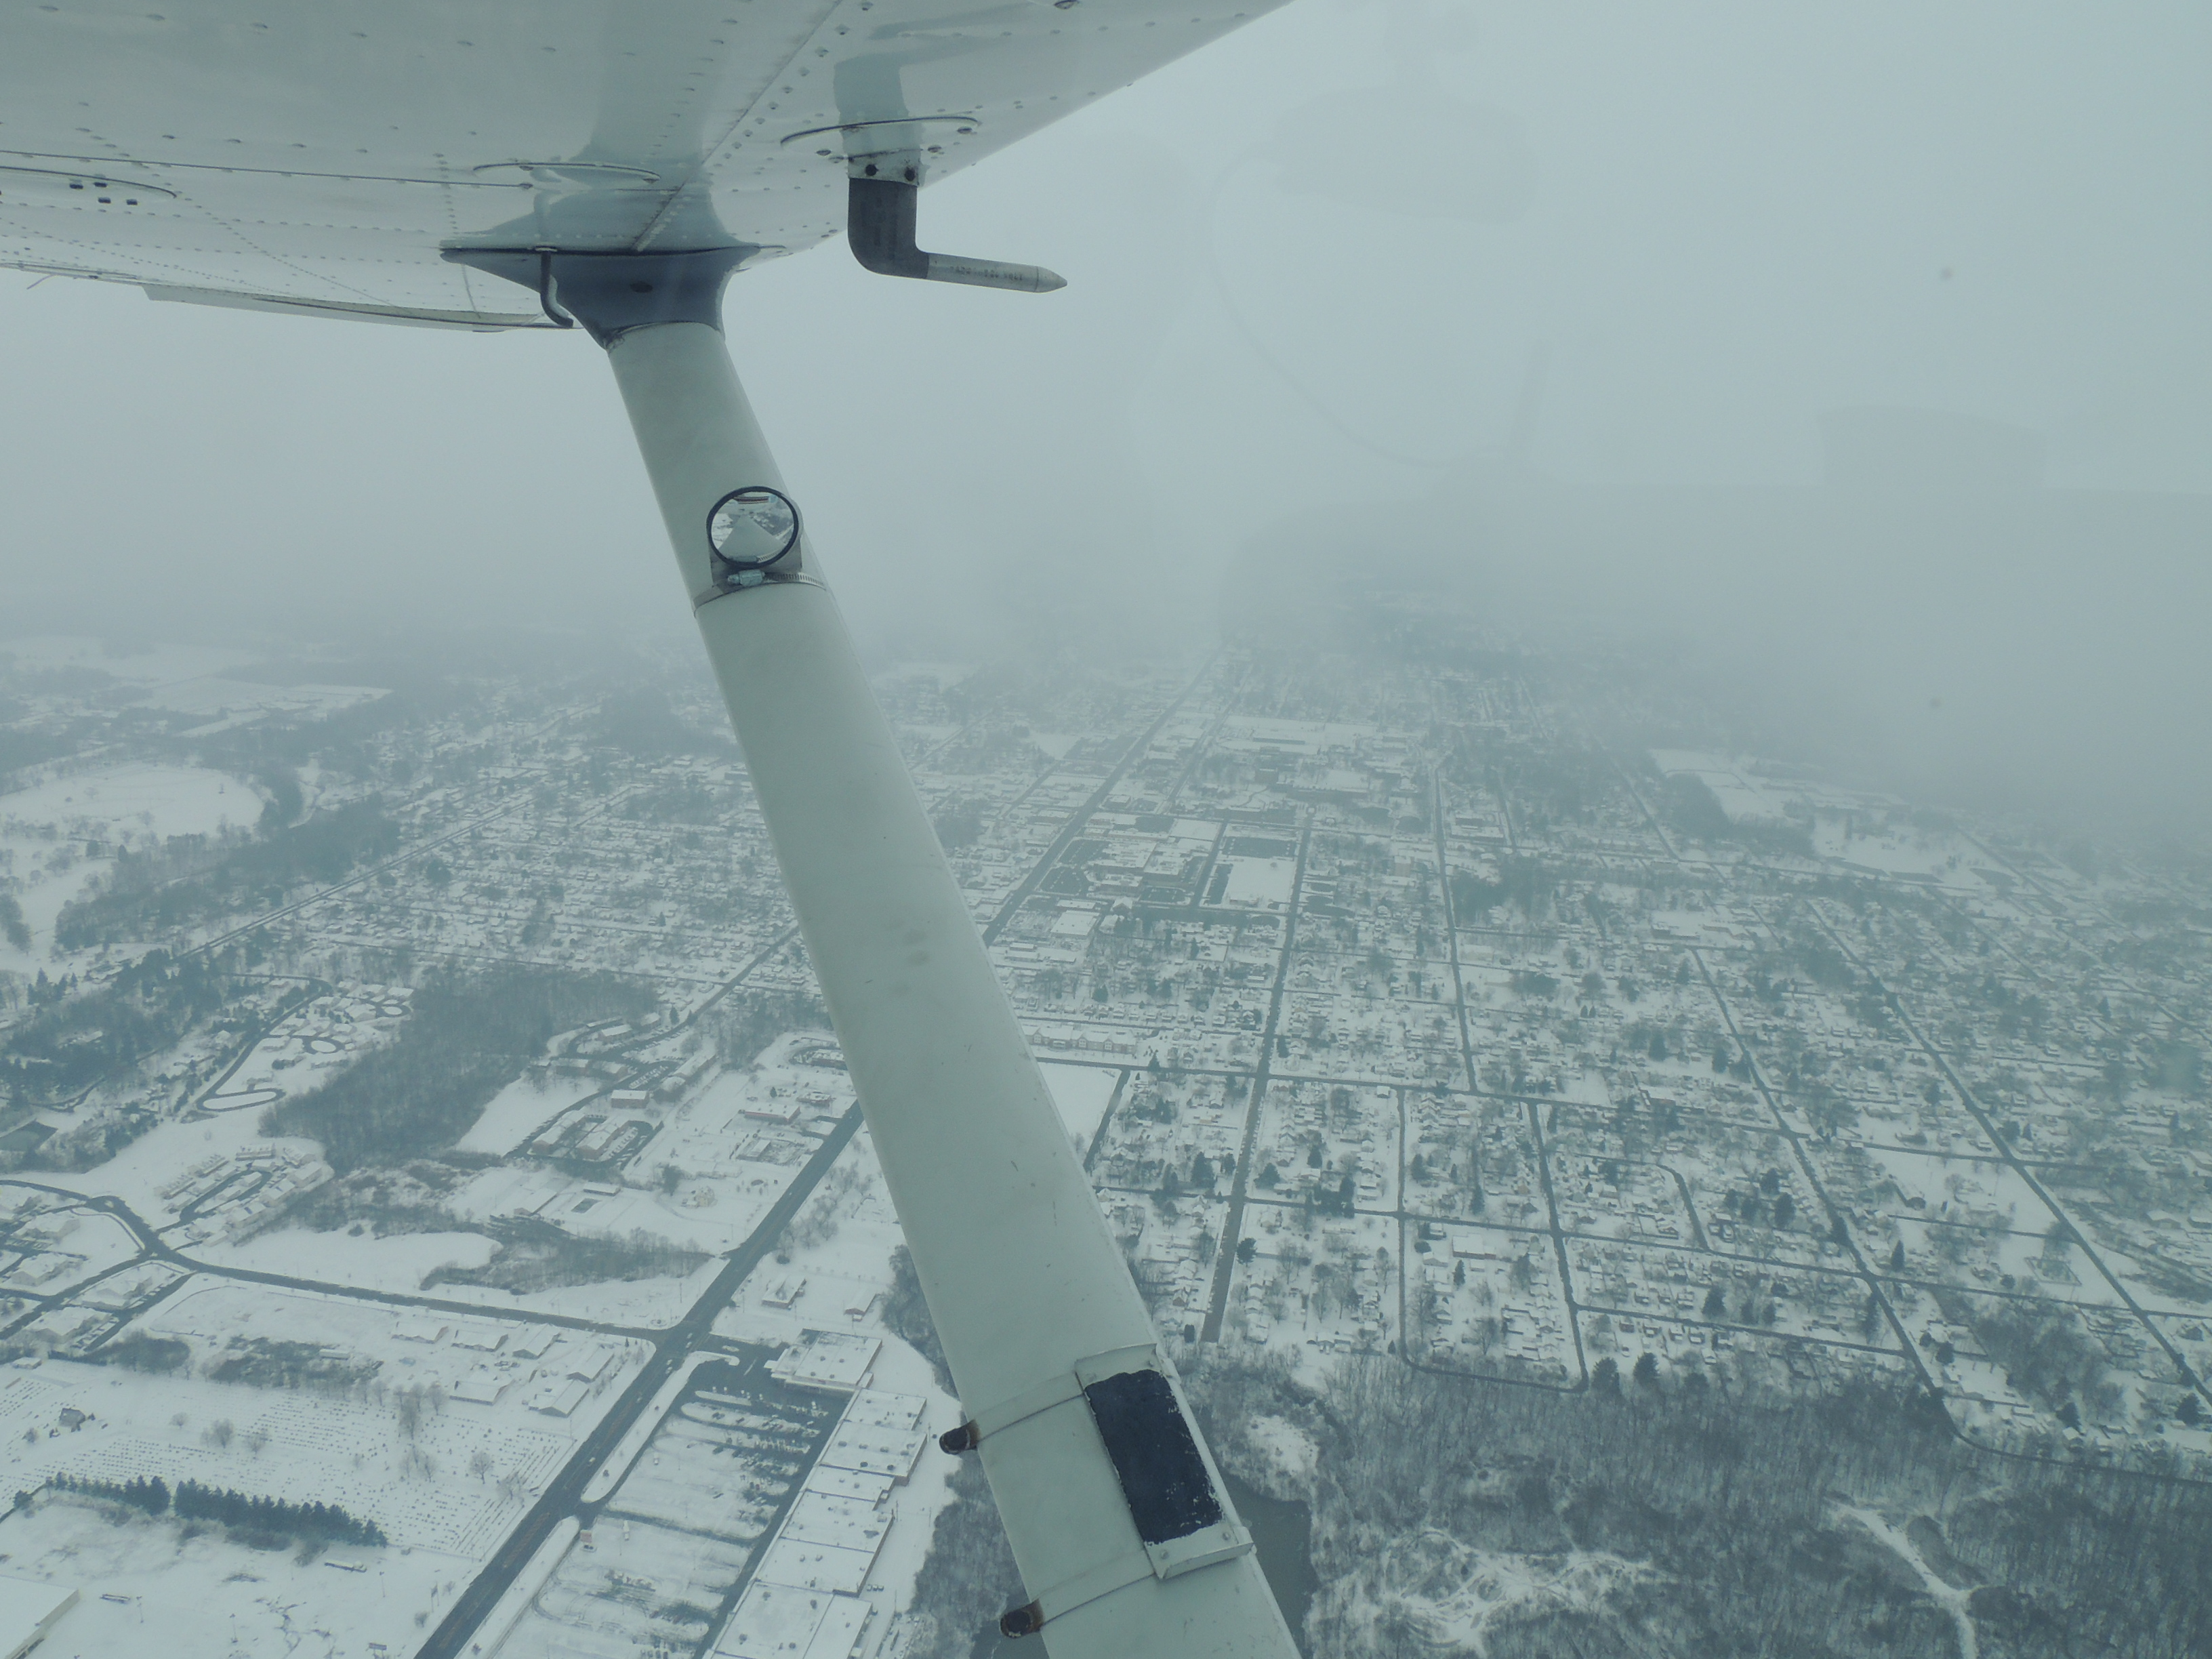 Flying thru snow over Ohio